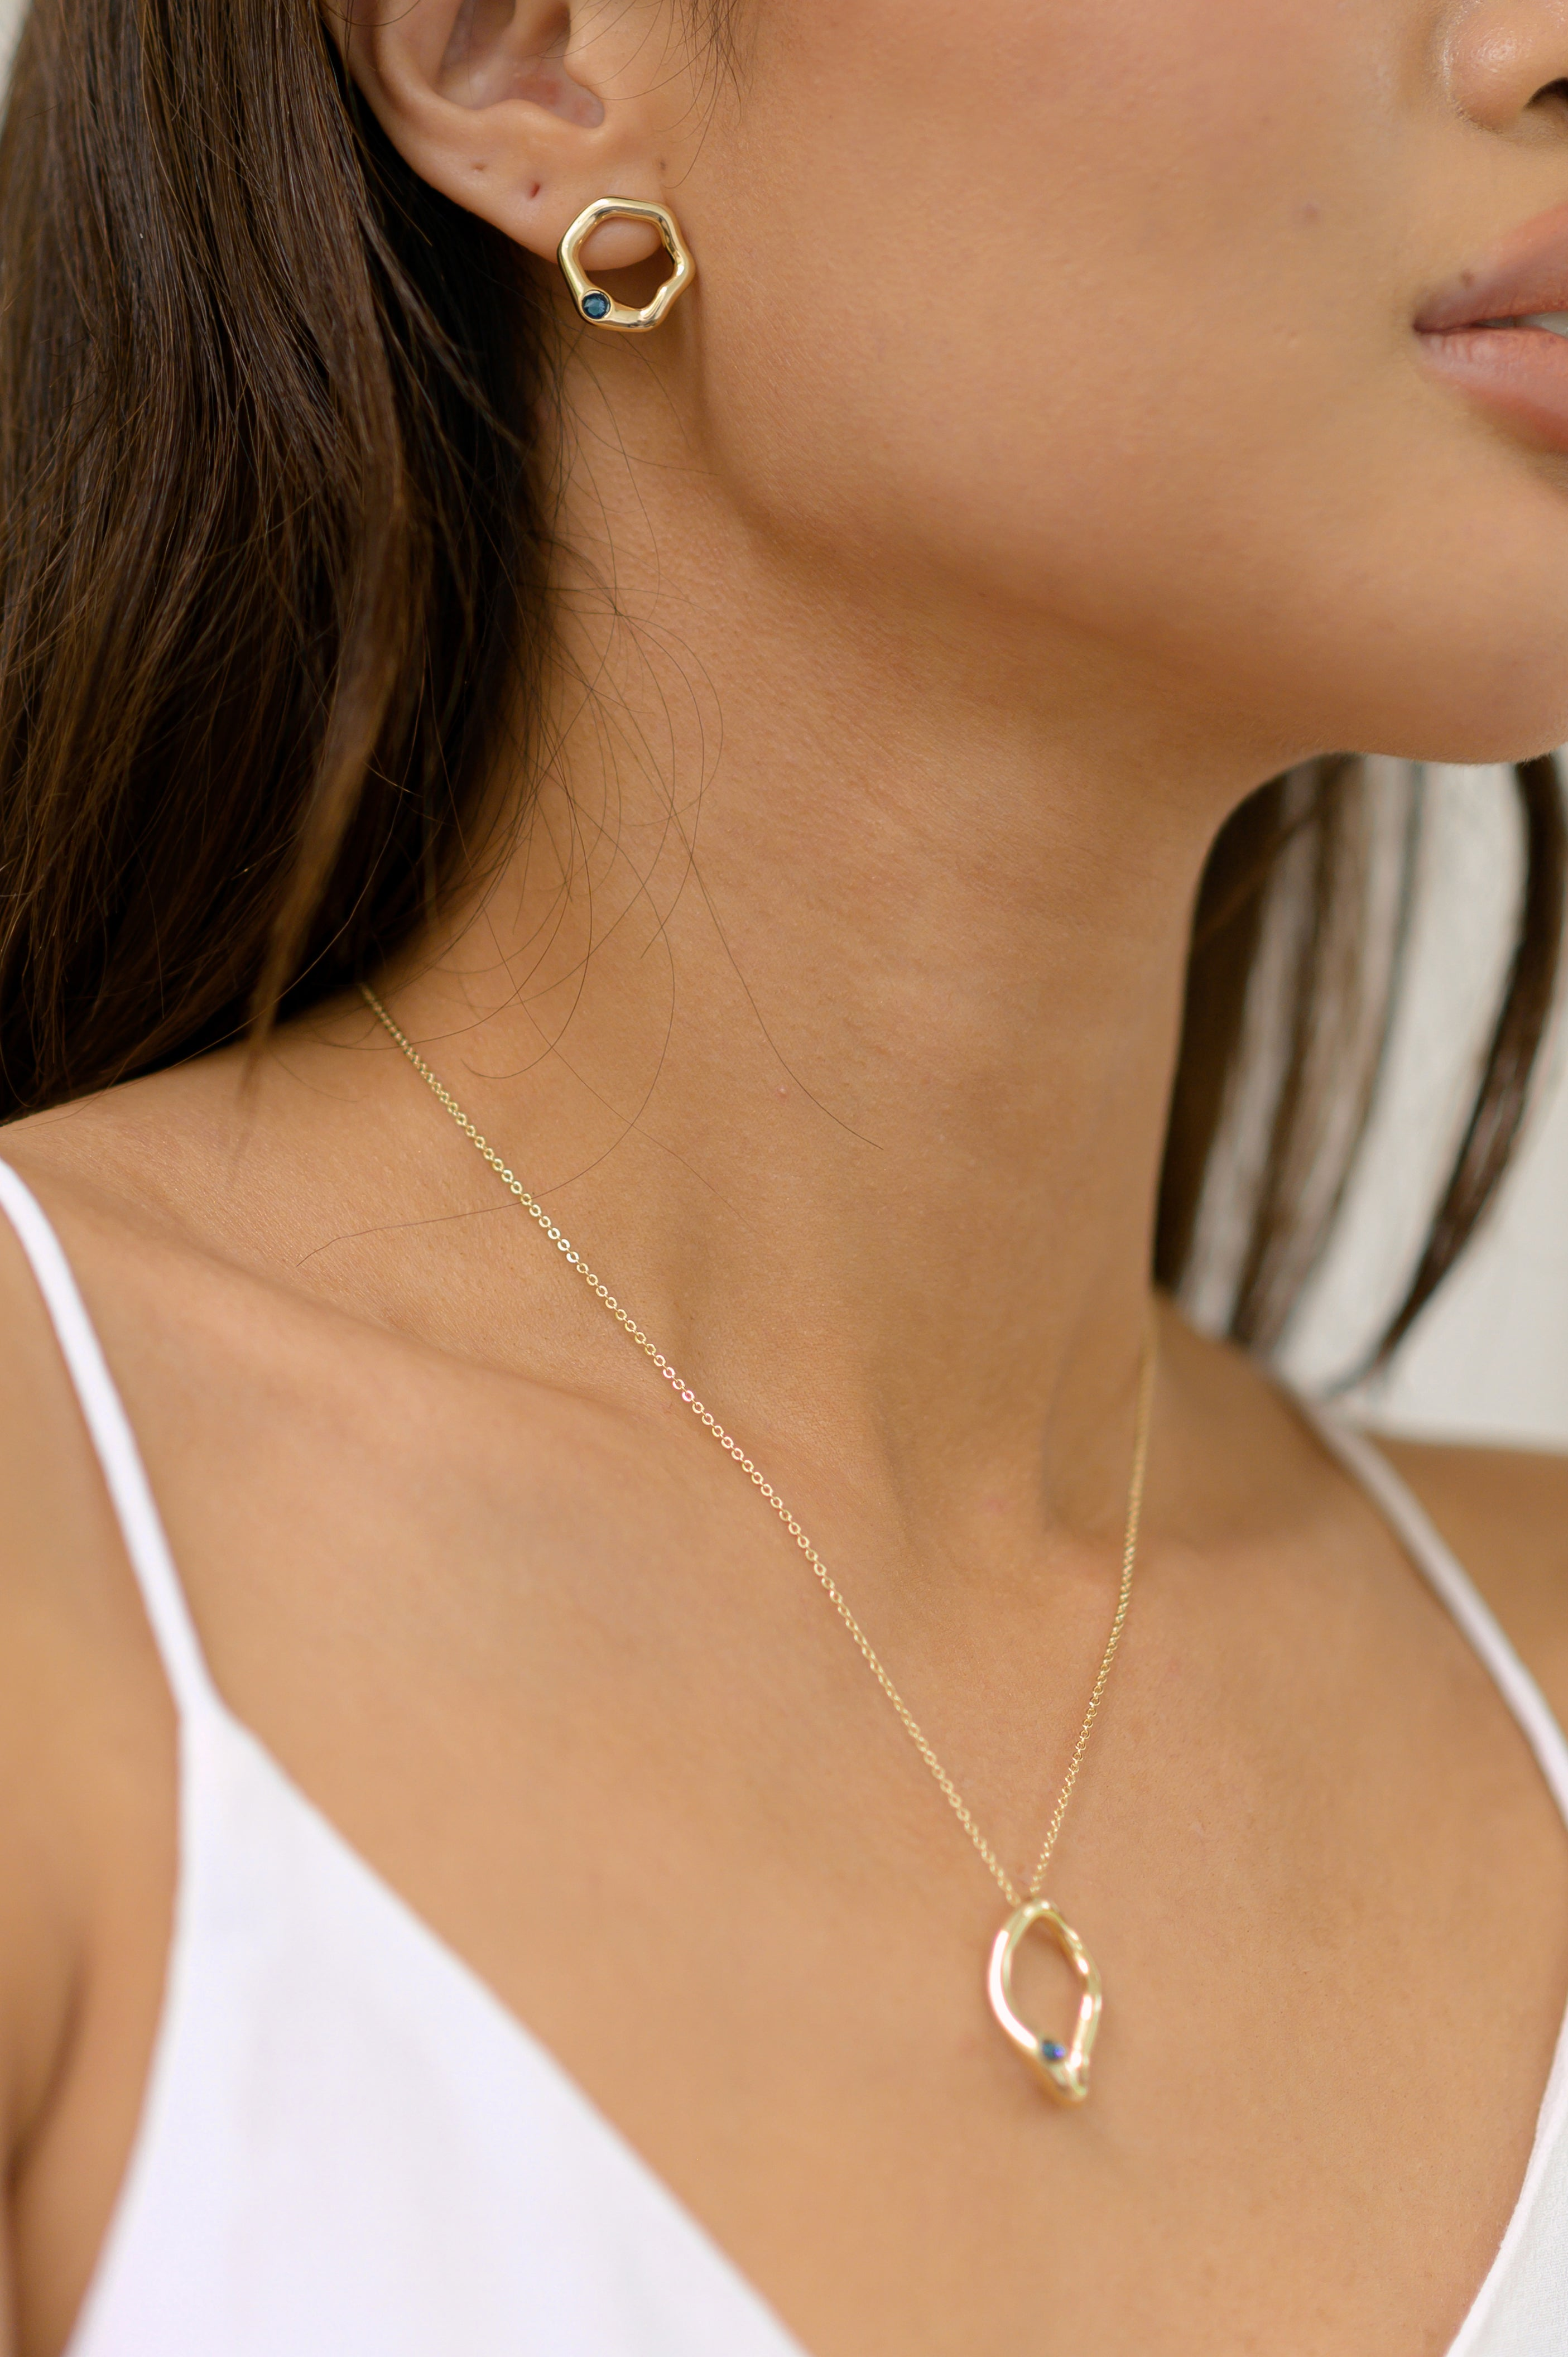 Francoise Necklace in Gold - Montana